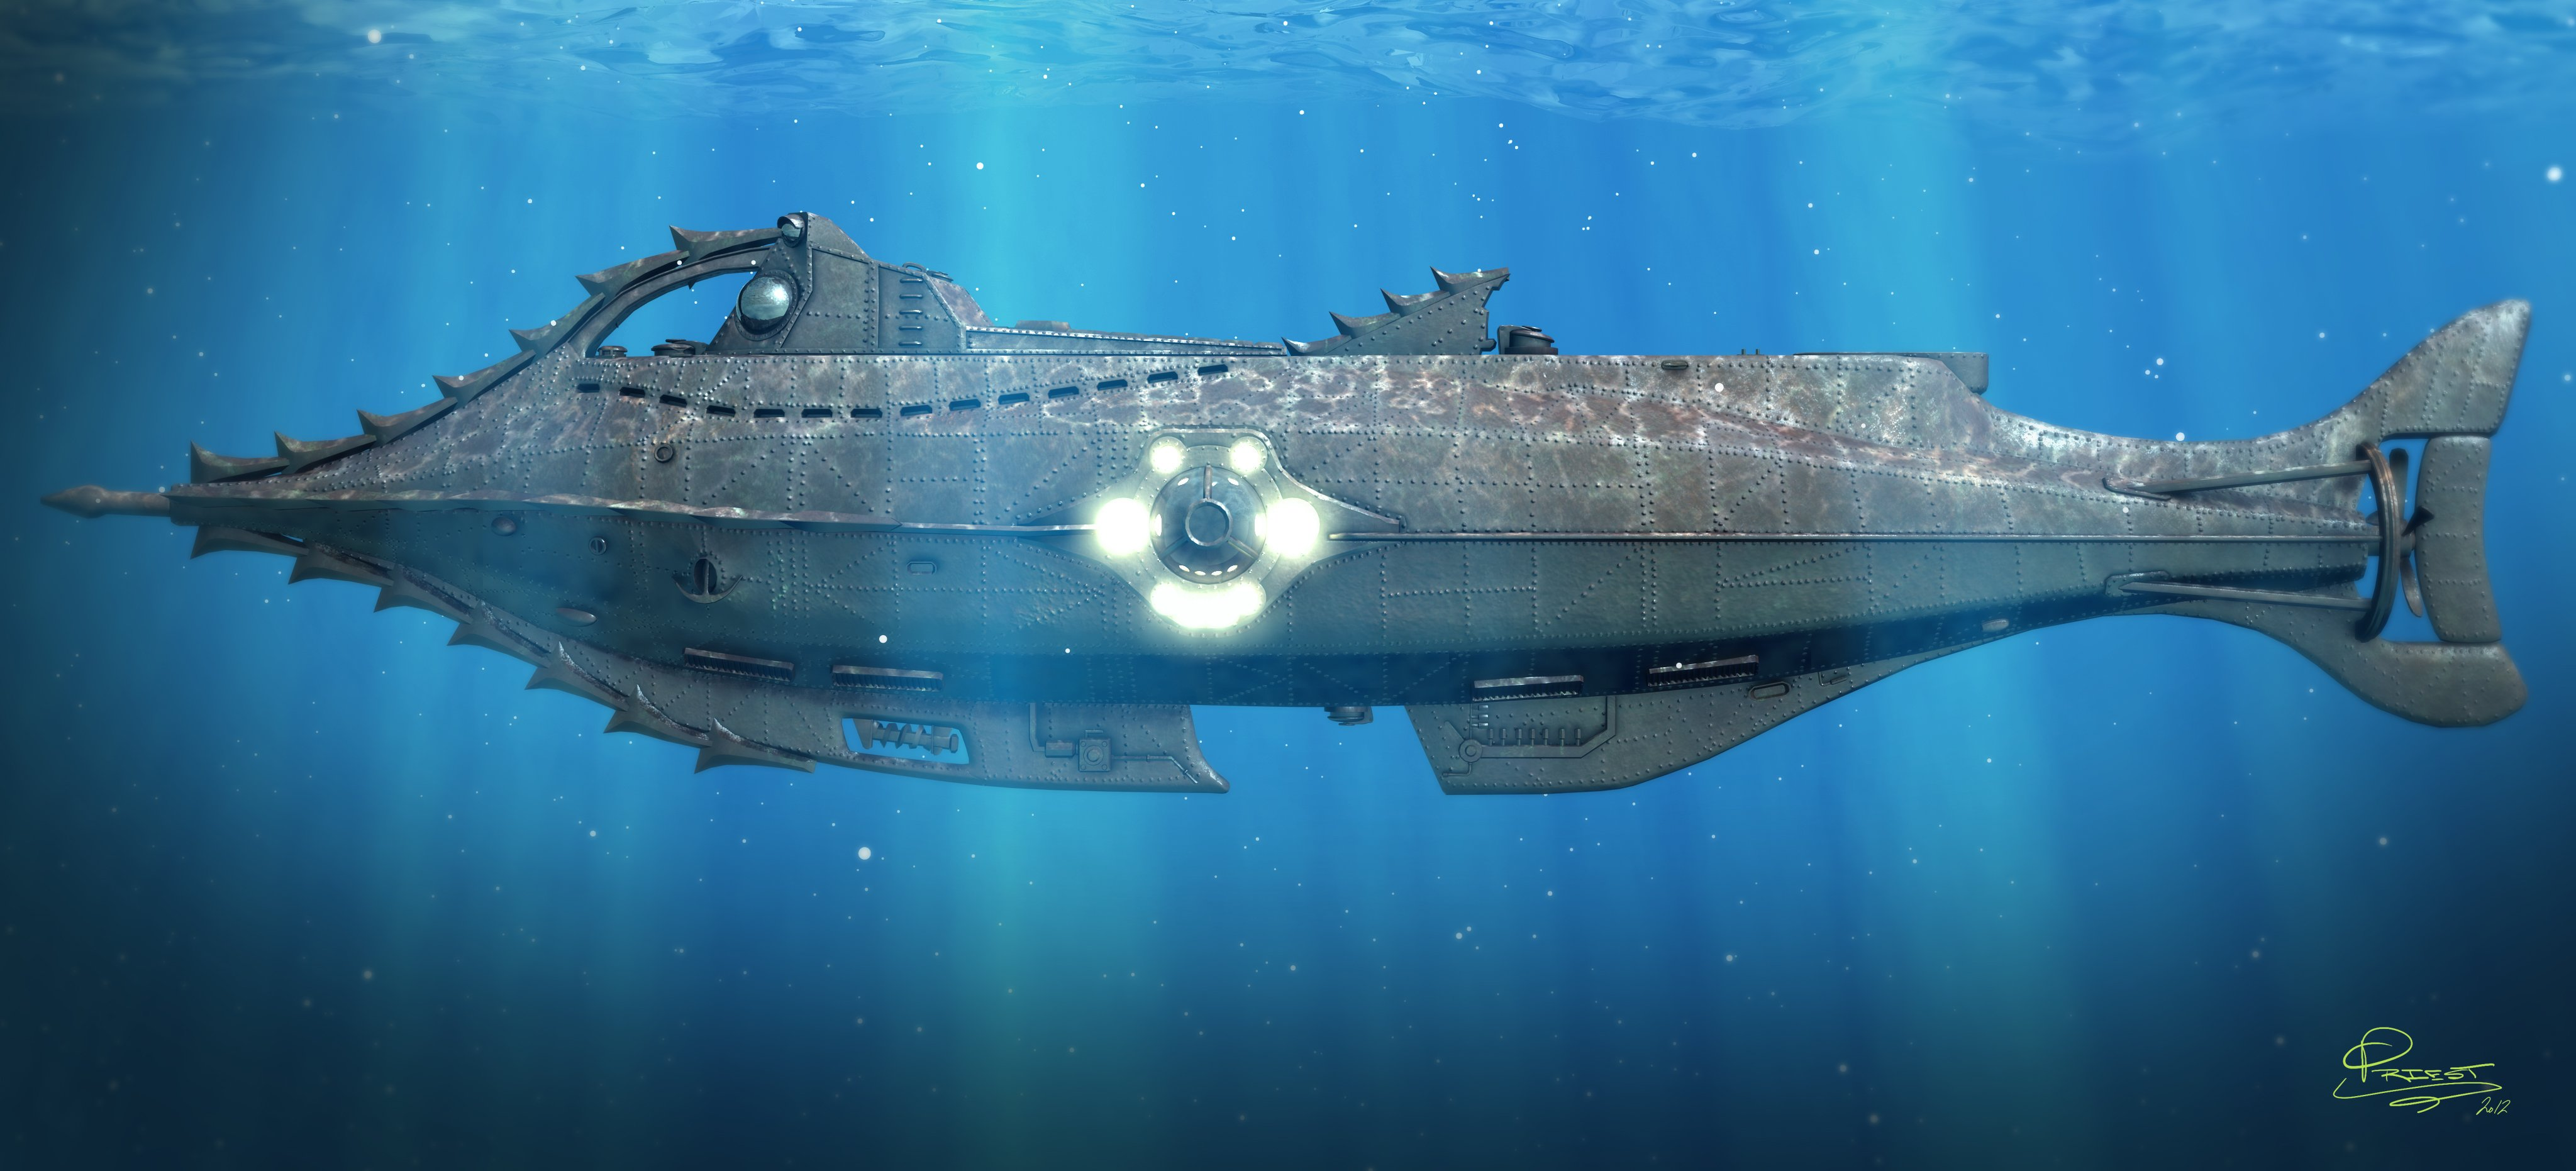 Disney Nautilus Submarine Wallpaper - 2763.4KB